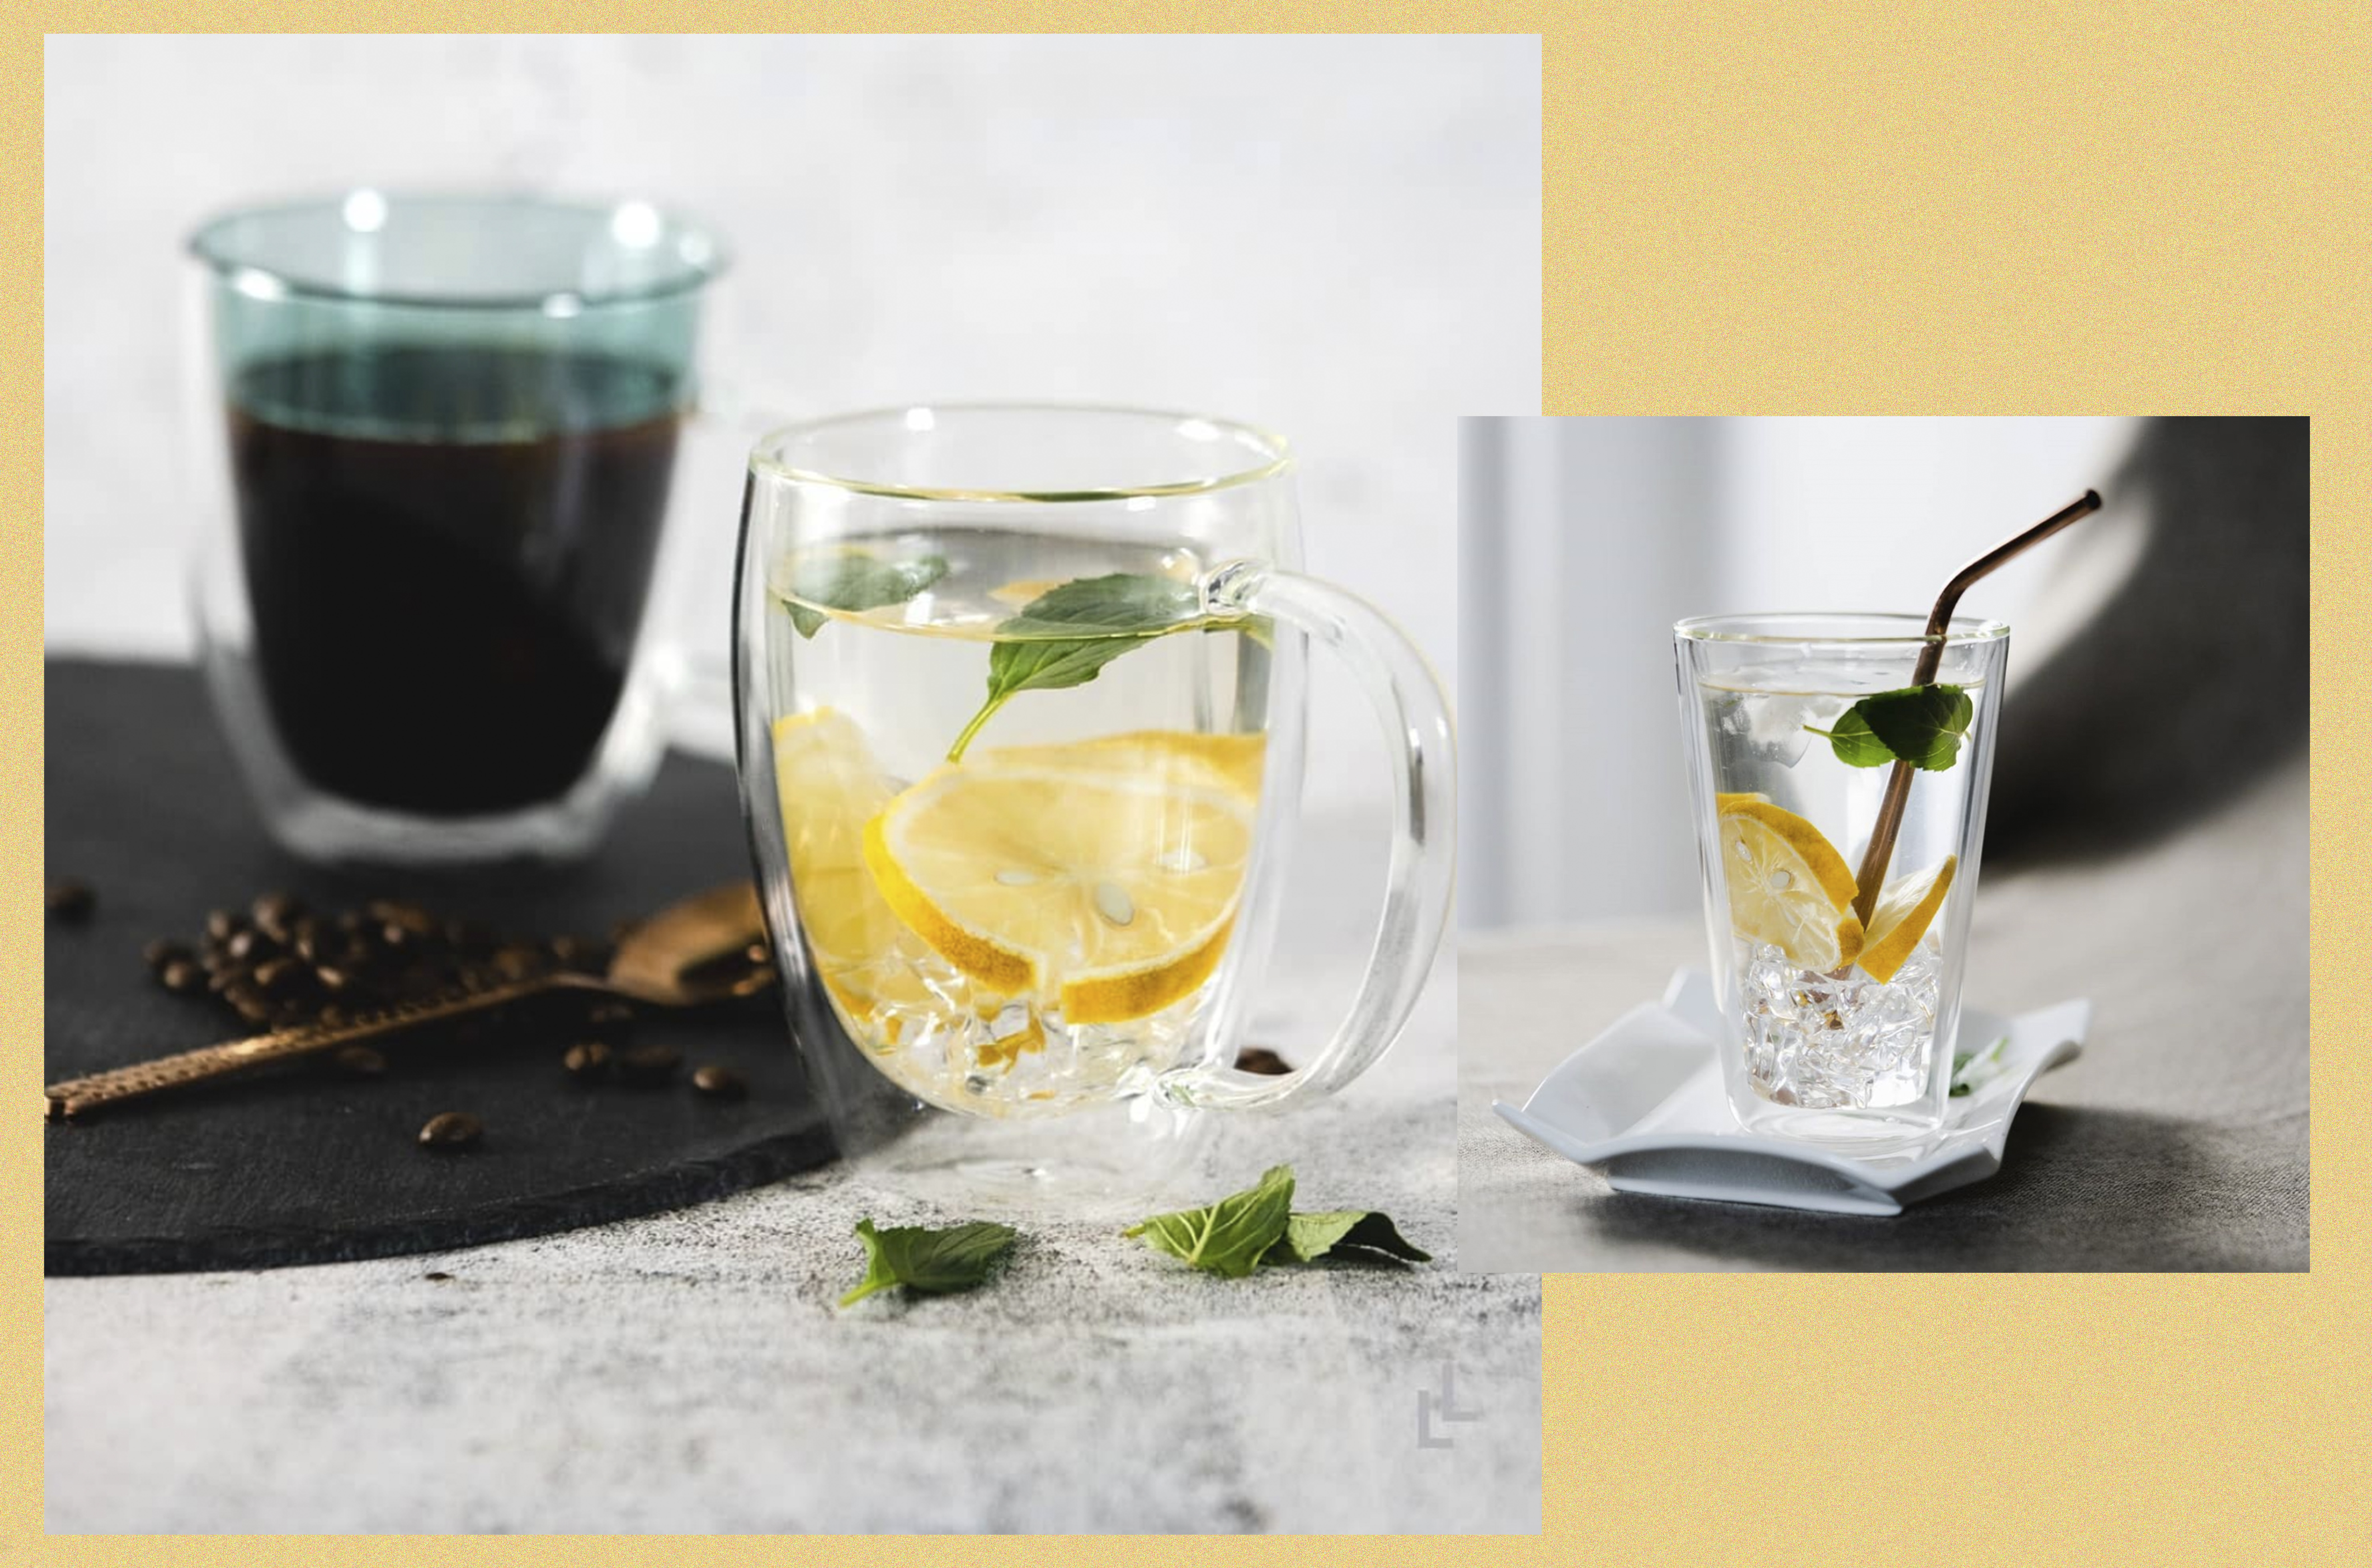 style mnl- double walled glasses